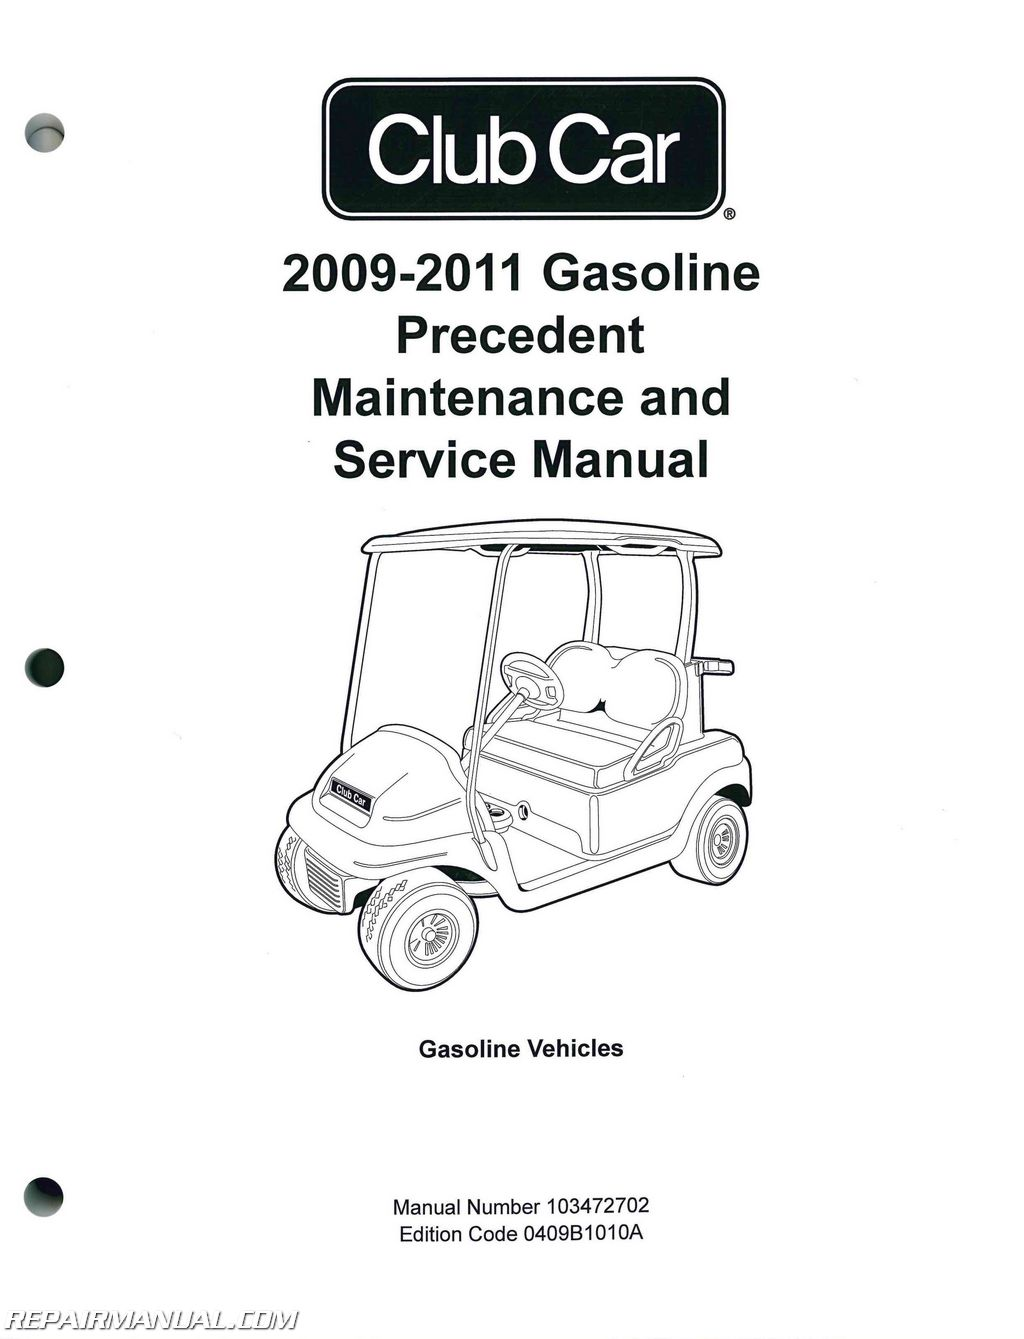 2009 2011 club car gasoline precedent maintenance and service manual rh repairmanual com 2008 Club Car Wiring Diagram 2008 club car wiring diagram